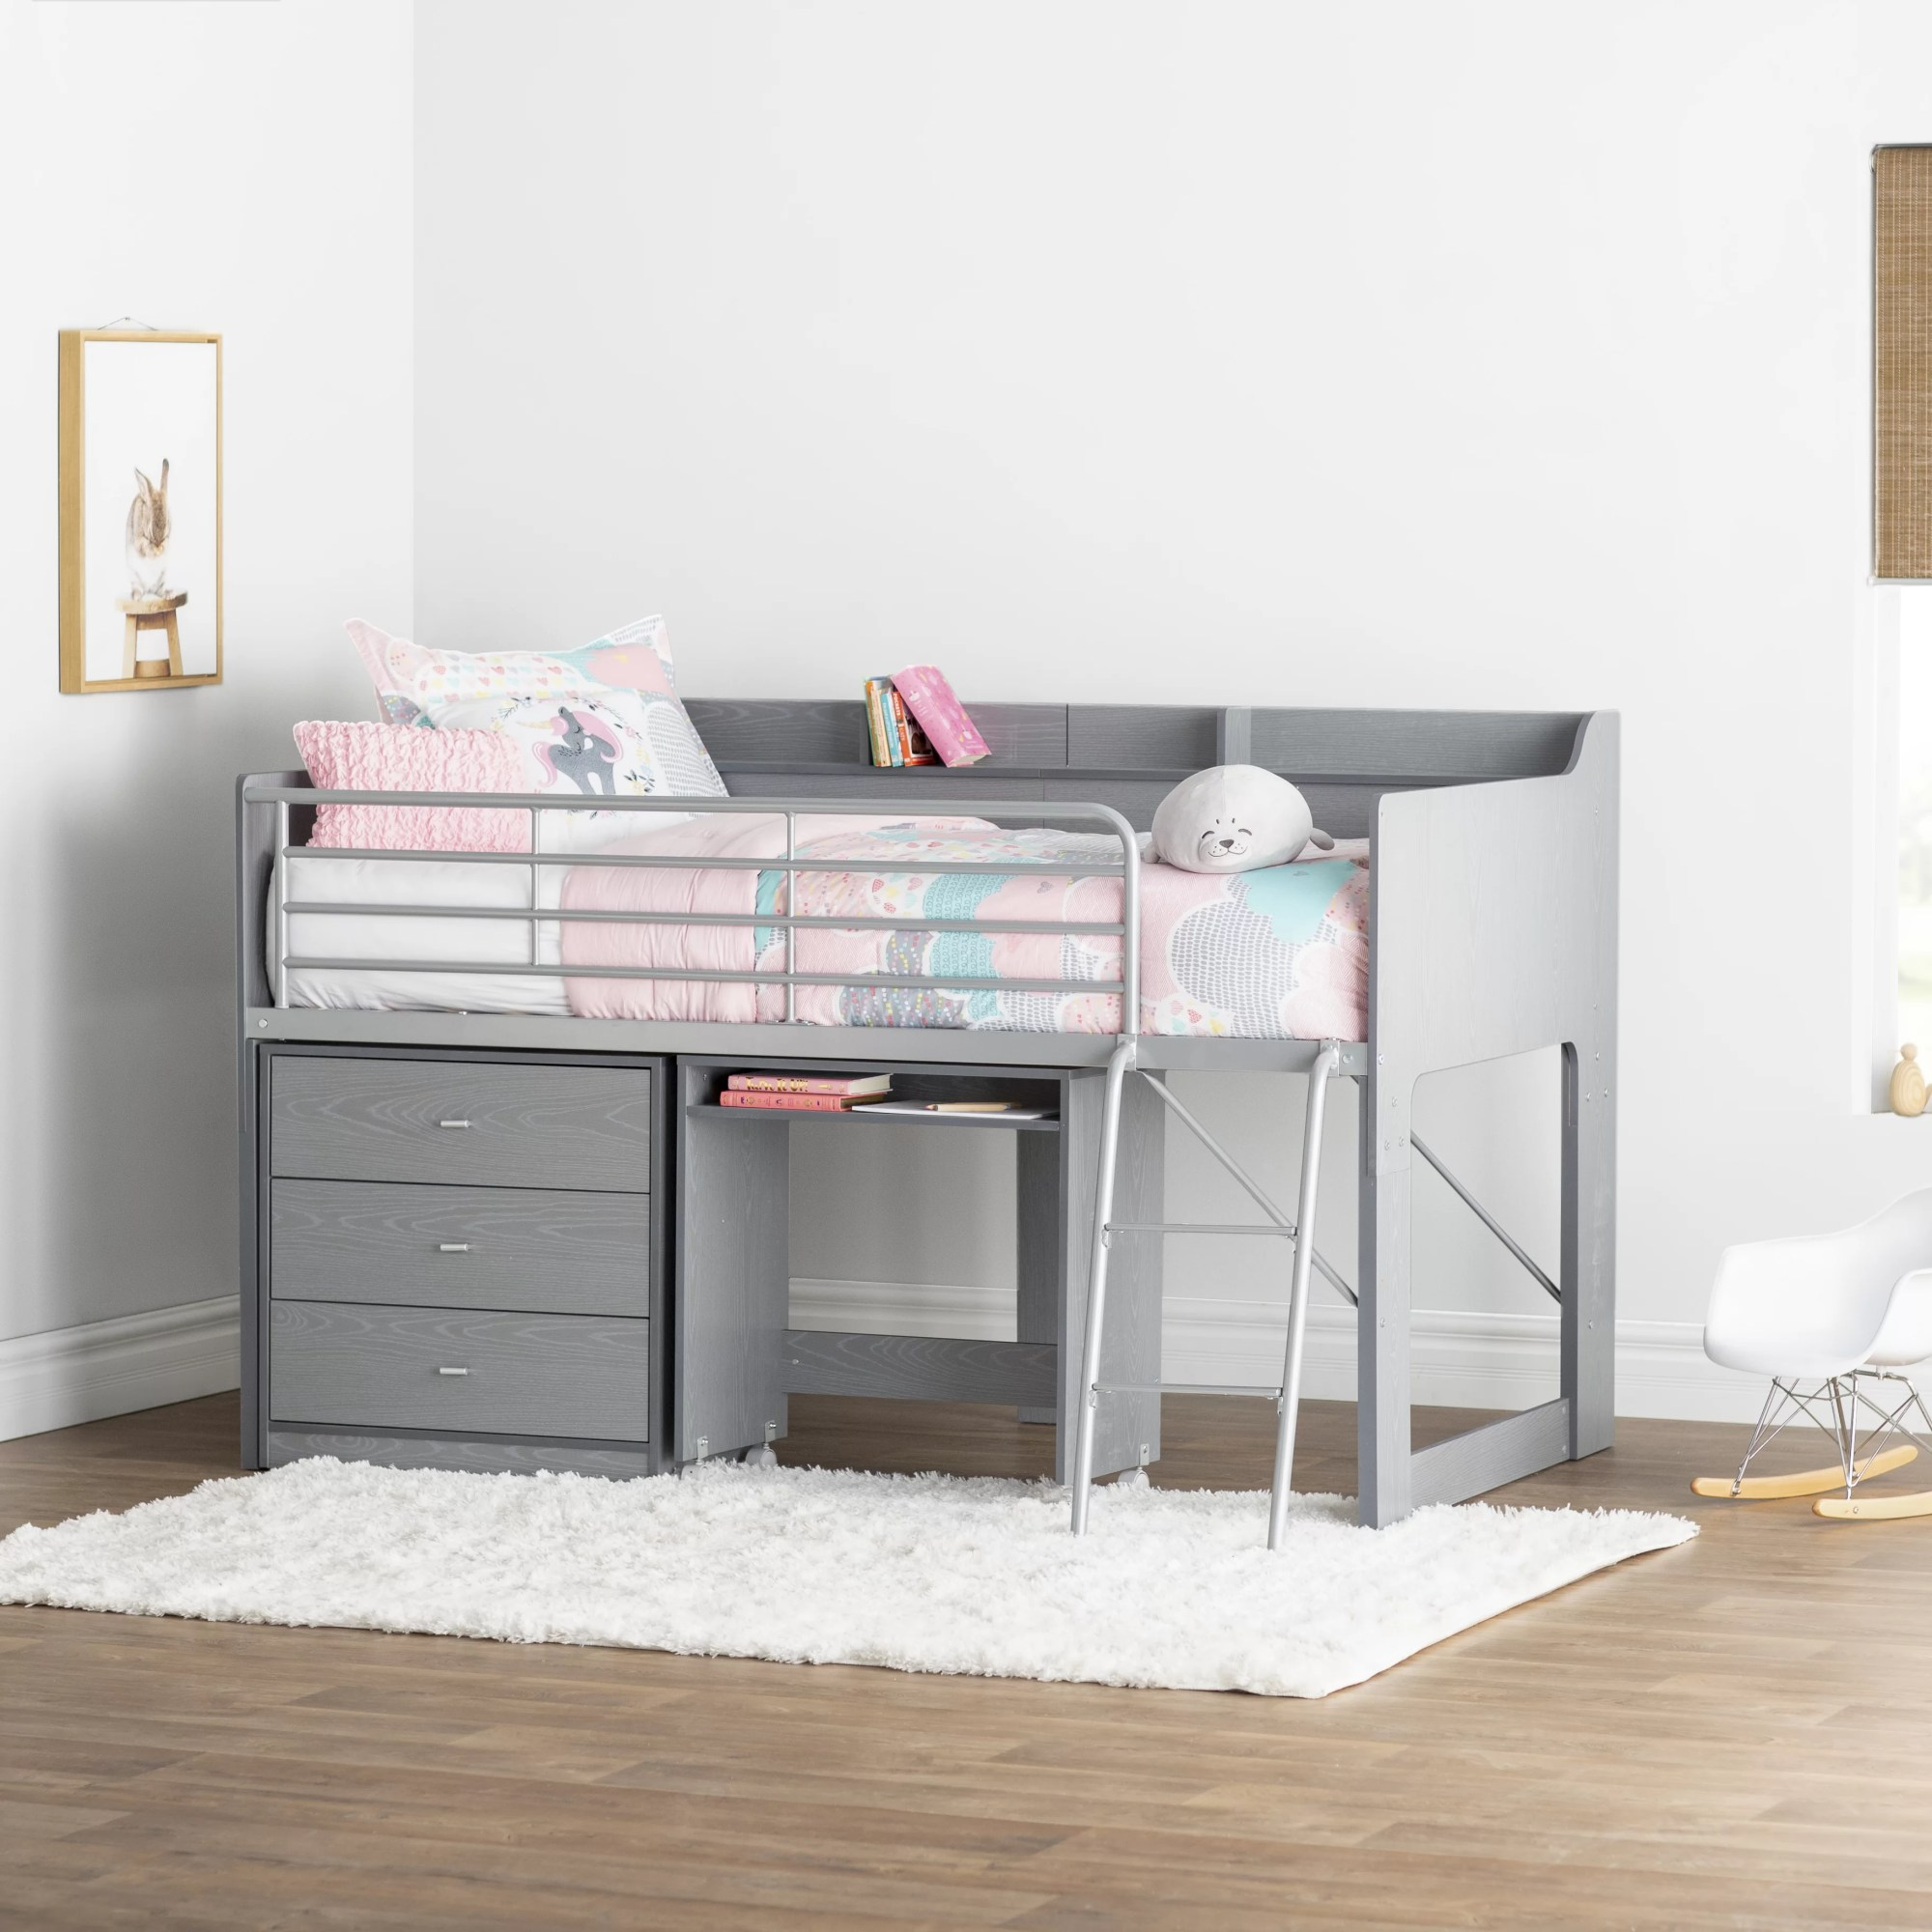 hight resolution of mack milo alcester twin low loft bed with desk and storage reviews wayfair